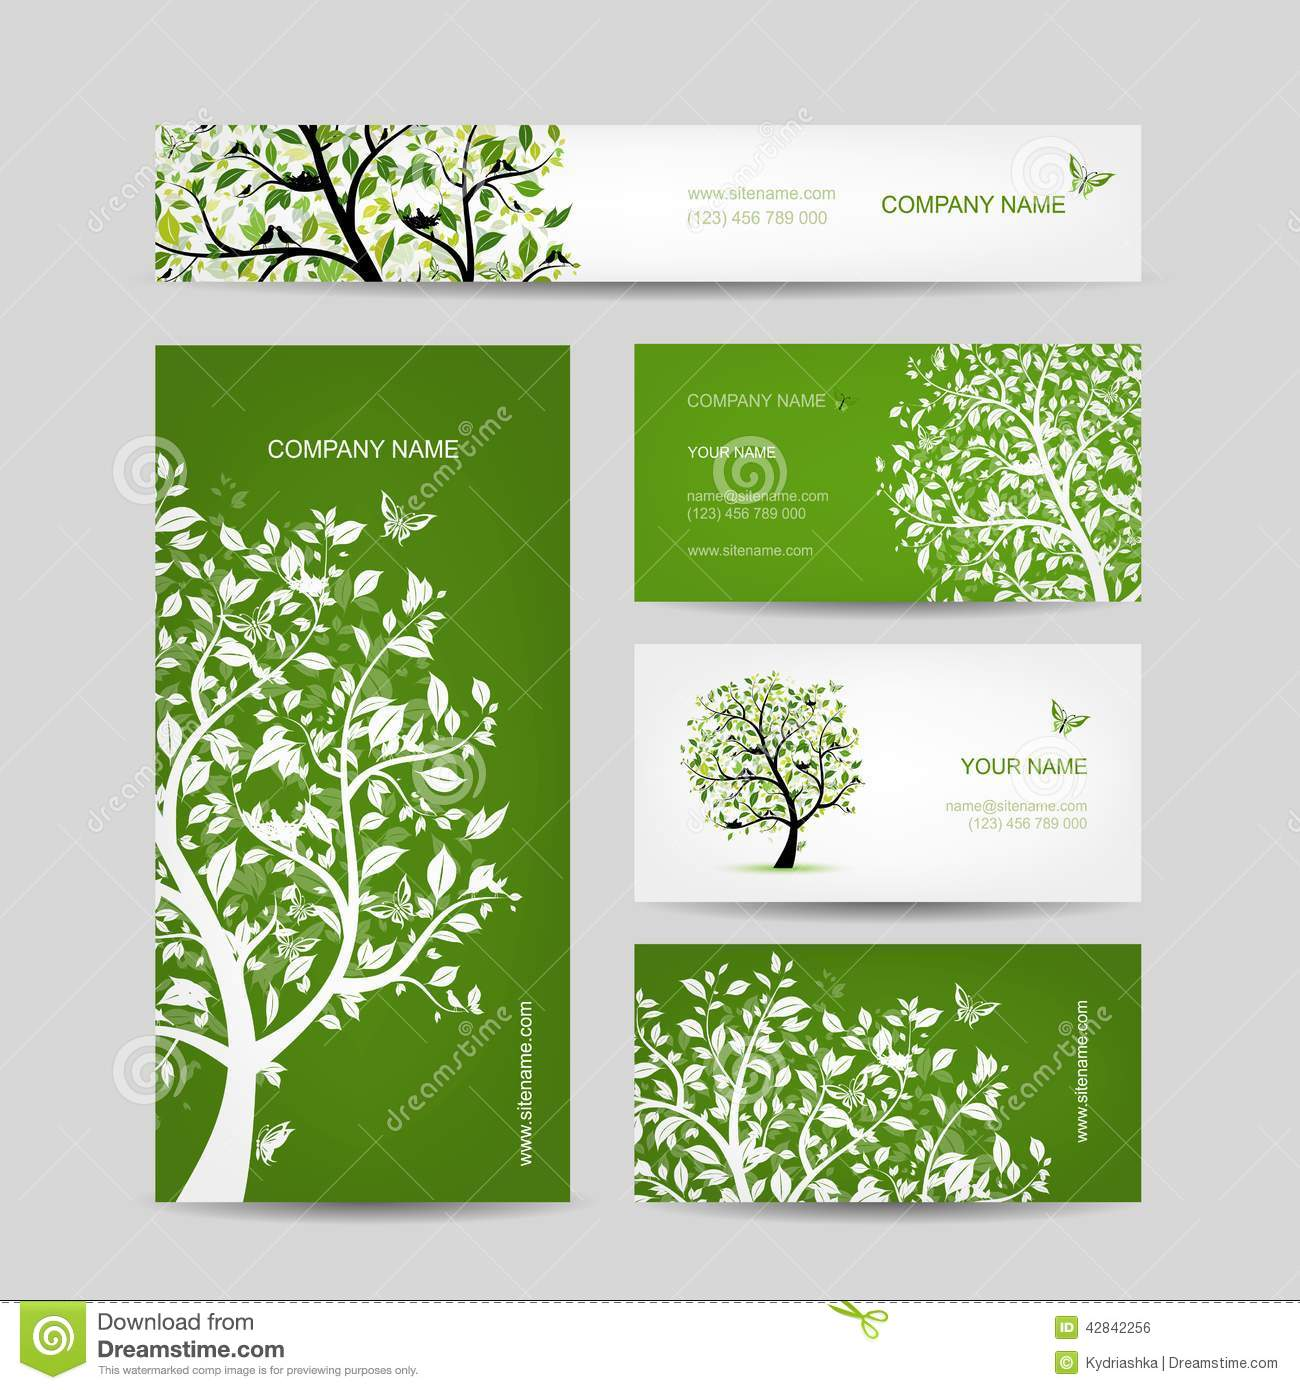 royalty free vector download business cards design - Garden Design Business Cards